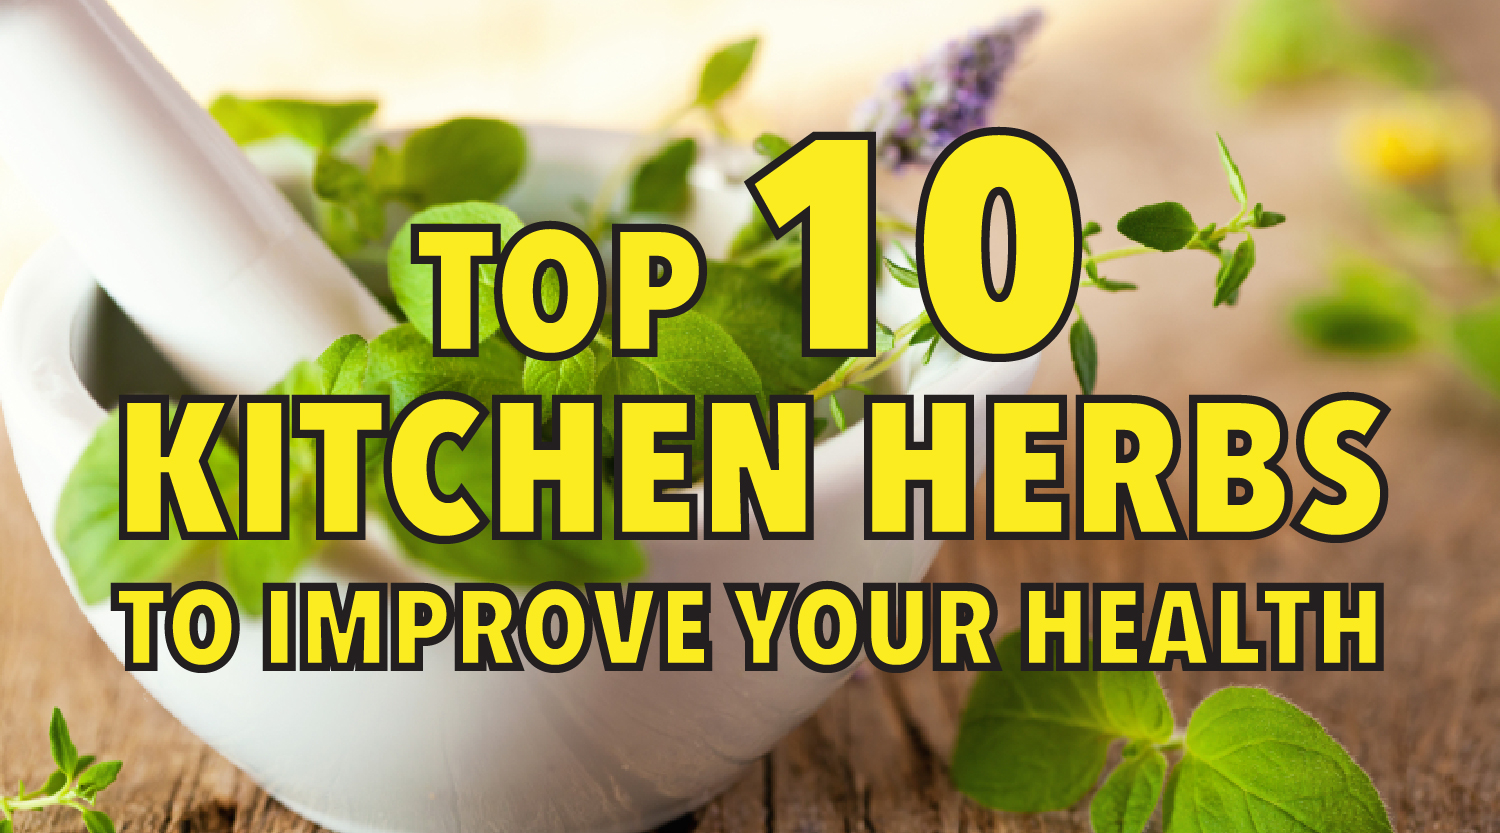 Top 10 kitchen herbs to improve your health